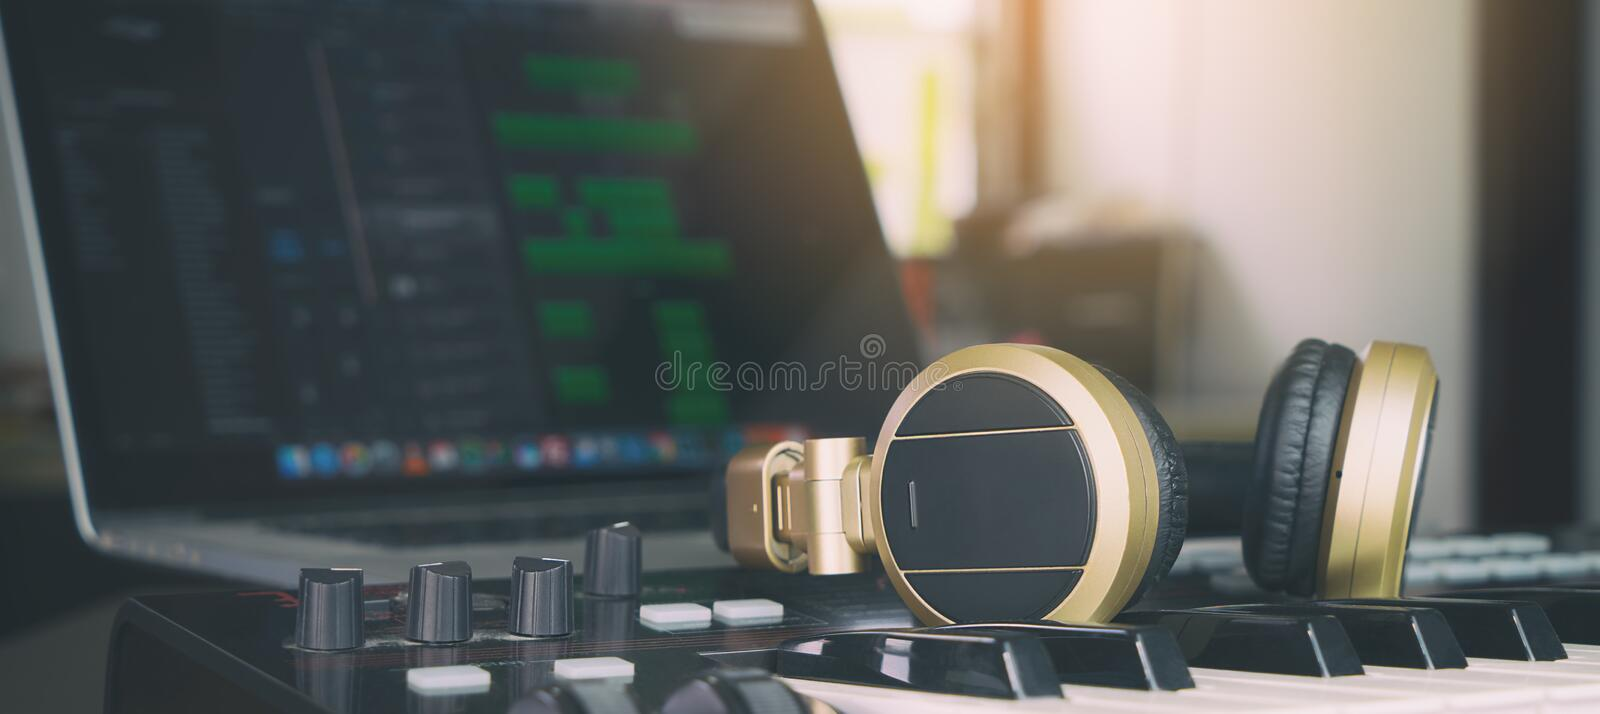 Studio de Home de producteur de musique d'ordinateur photos stock